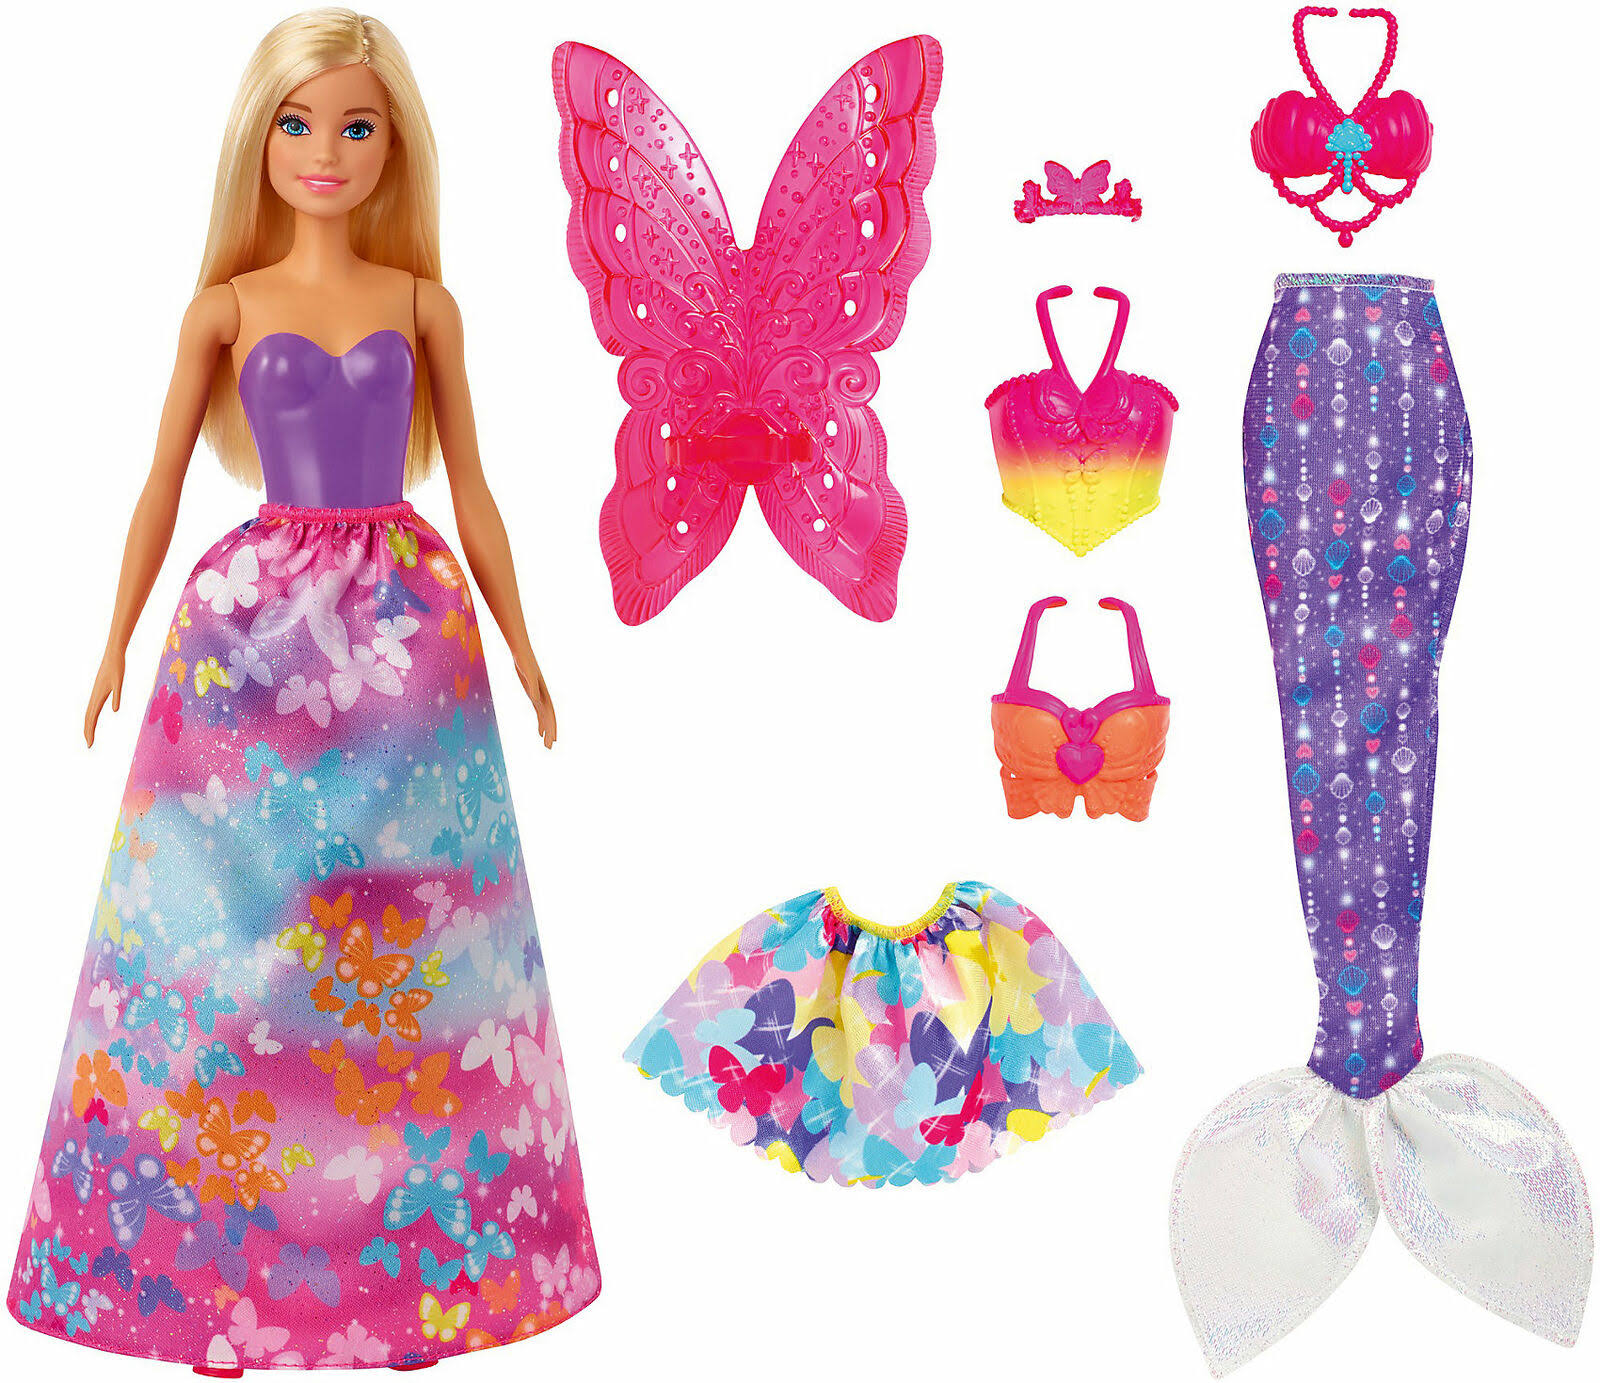 Barbie Dreamtopia Dress-Up Fashion Doll